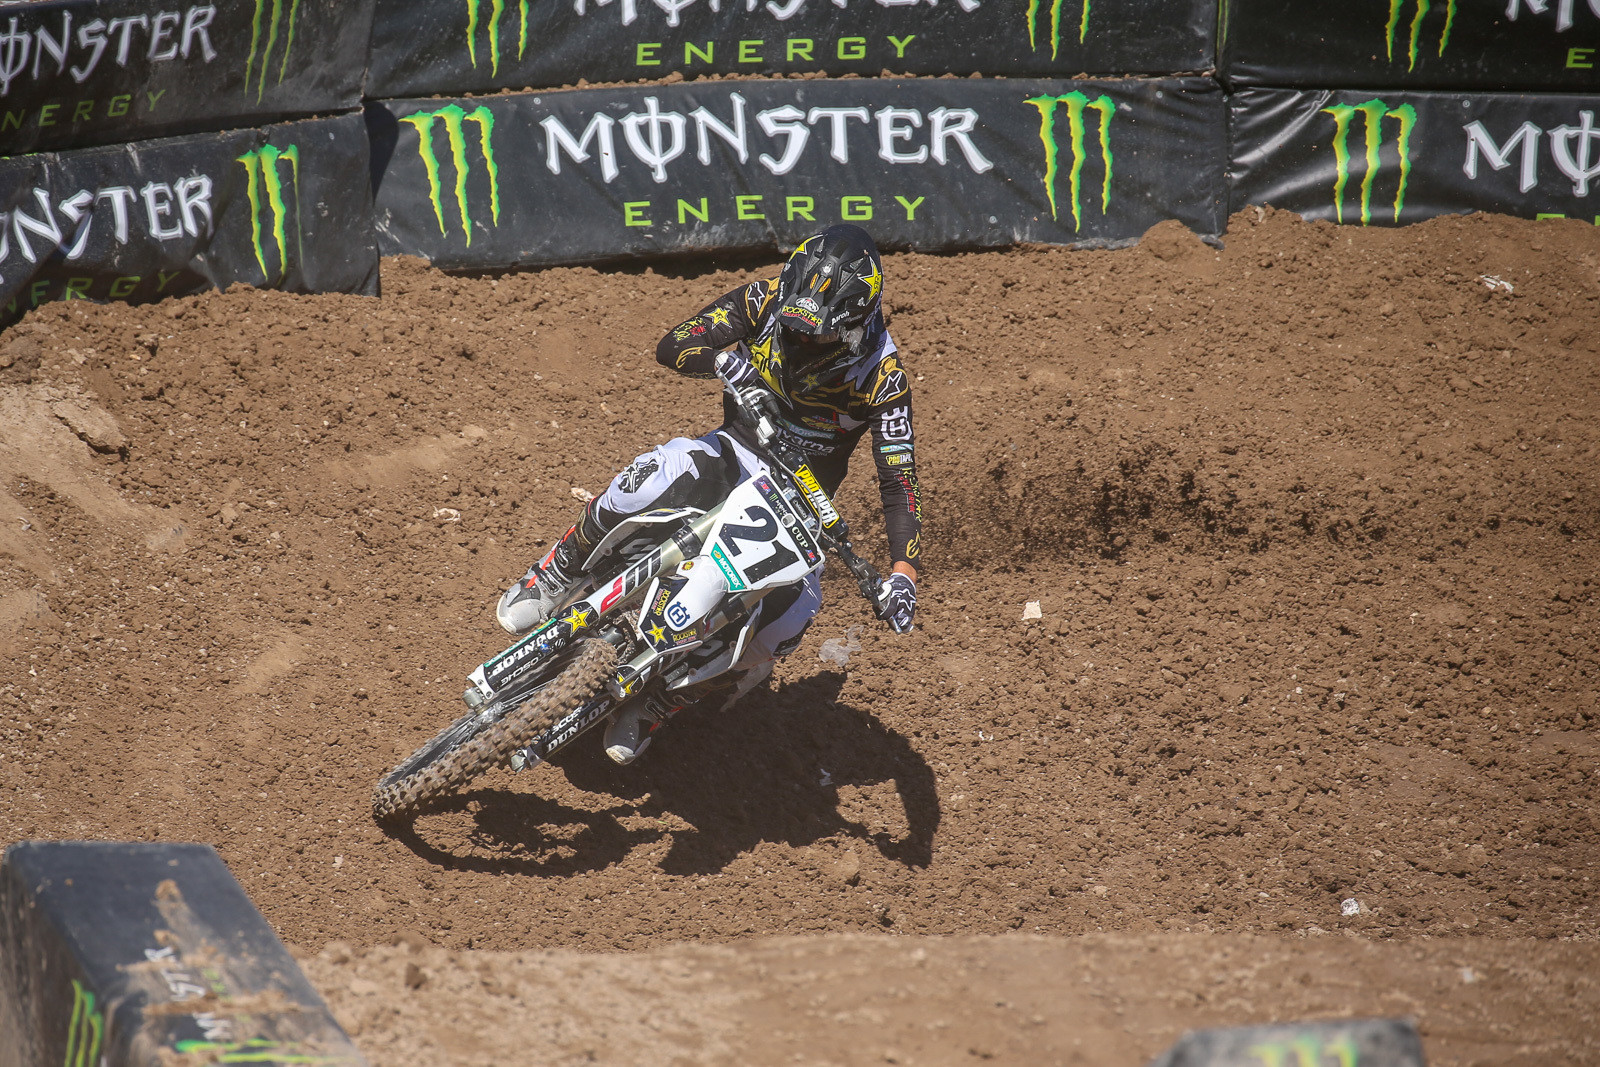 Yep, Jason Anderson looks like his old self out there on the Vegas terrain. We're stoked to see him line up out there.